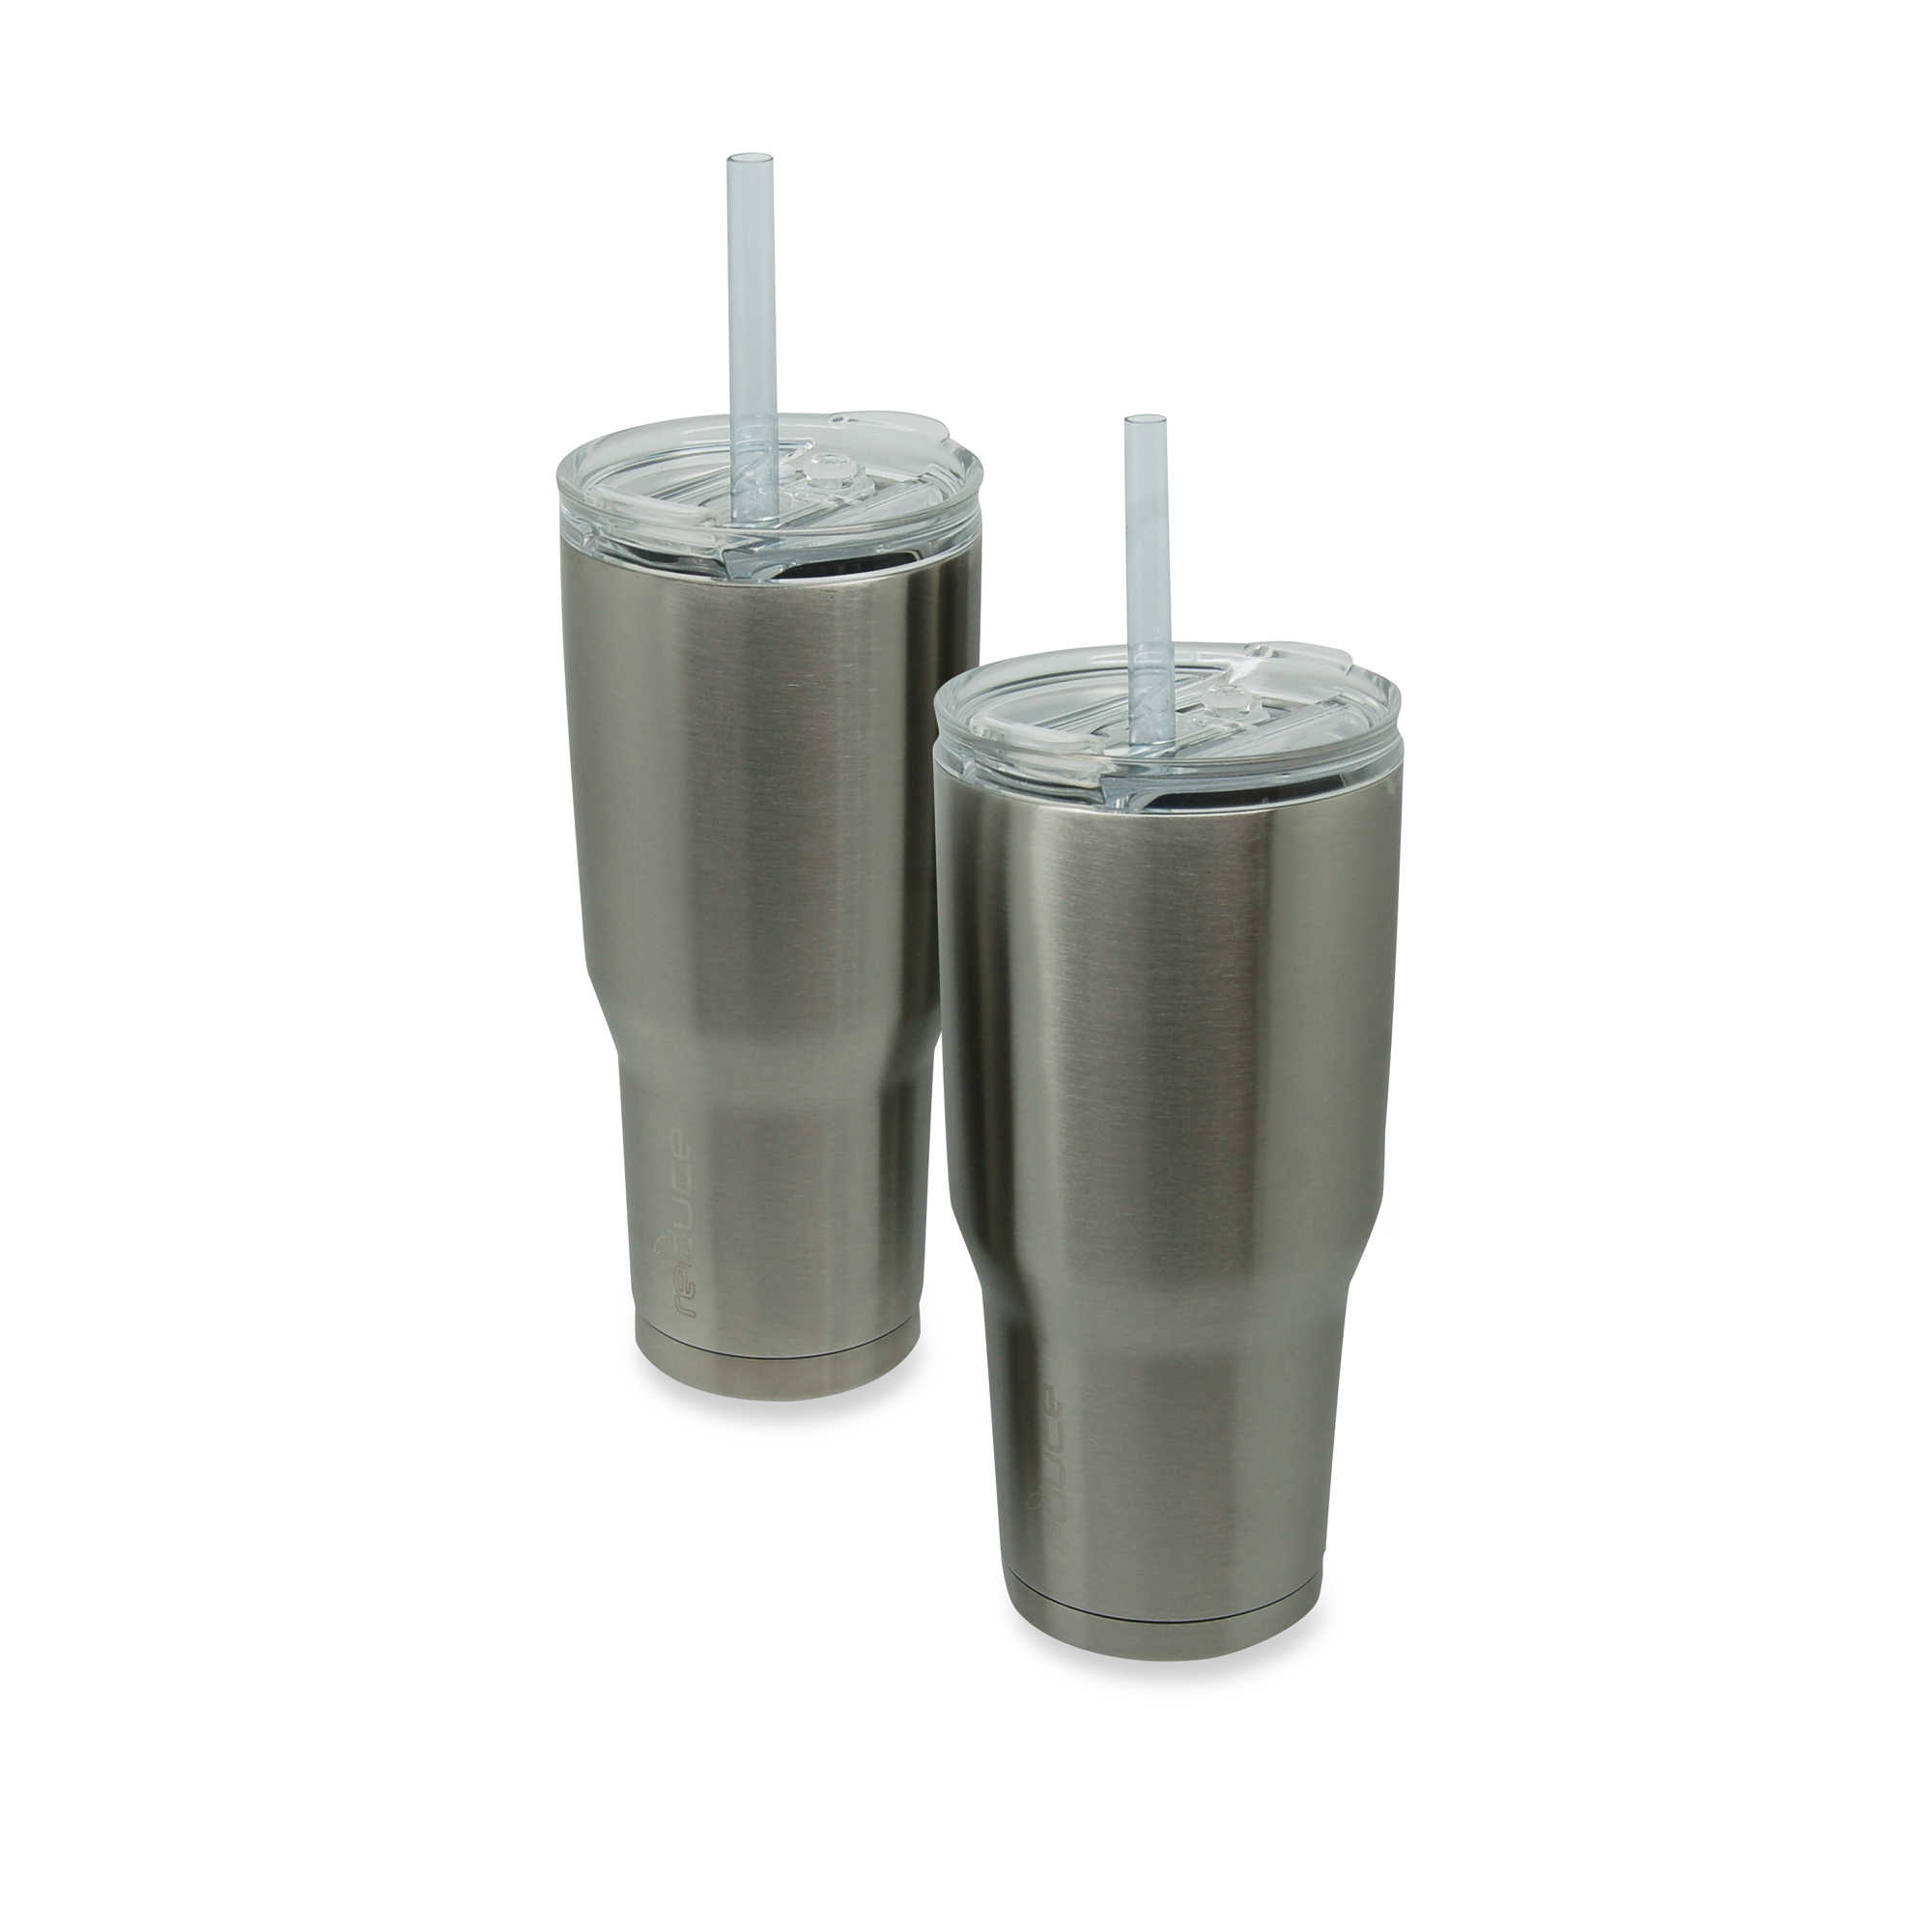 Bed bath and beyond chicago il - Image Of Vacuum Insulated Metal Cold 1 Tumbler With Straw